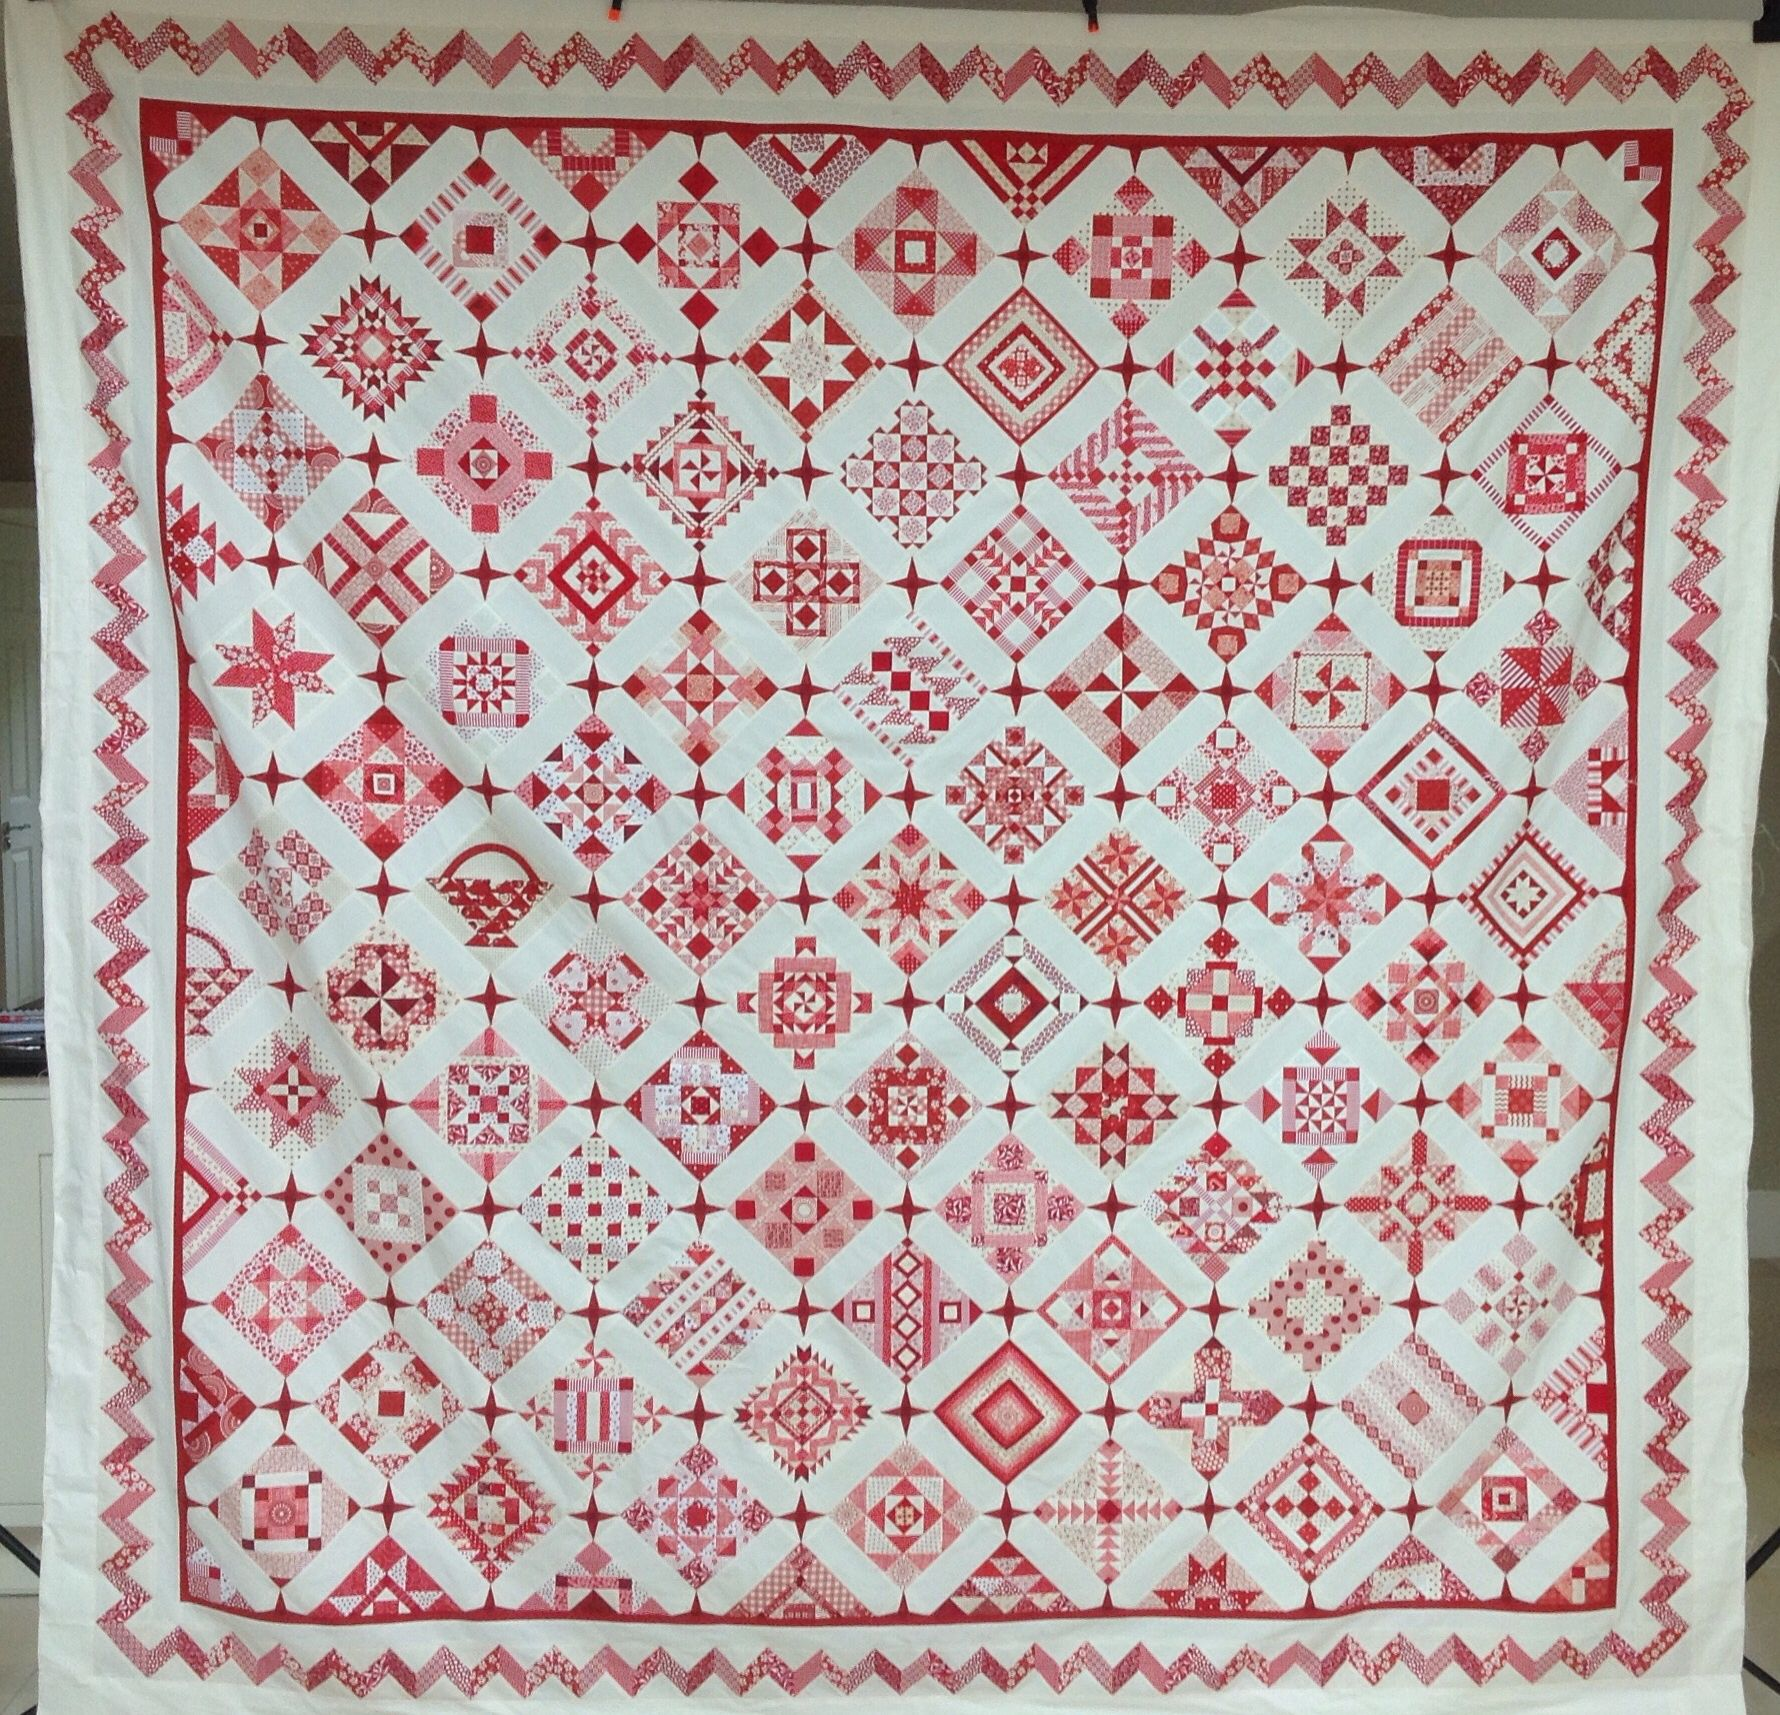 Nearly Insane quilt, salinda Rupp quilt. Red and White sampler quilt. Hand pieced english paper piecing.